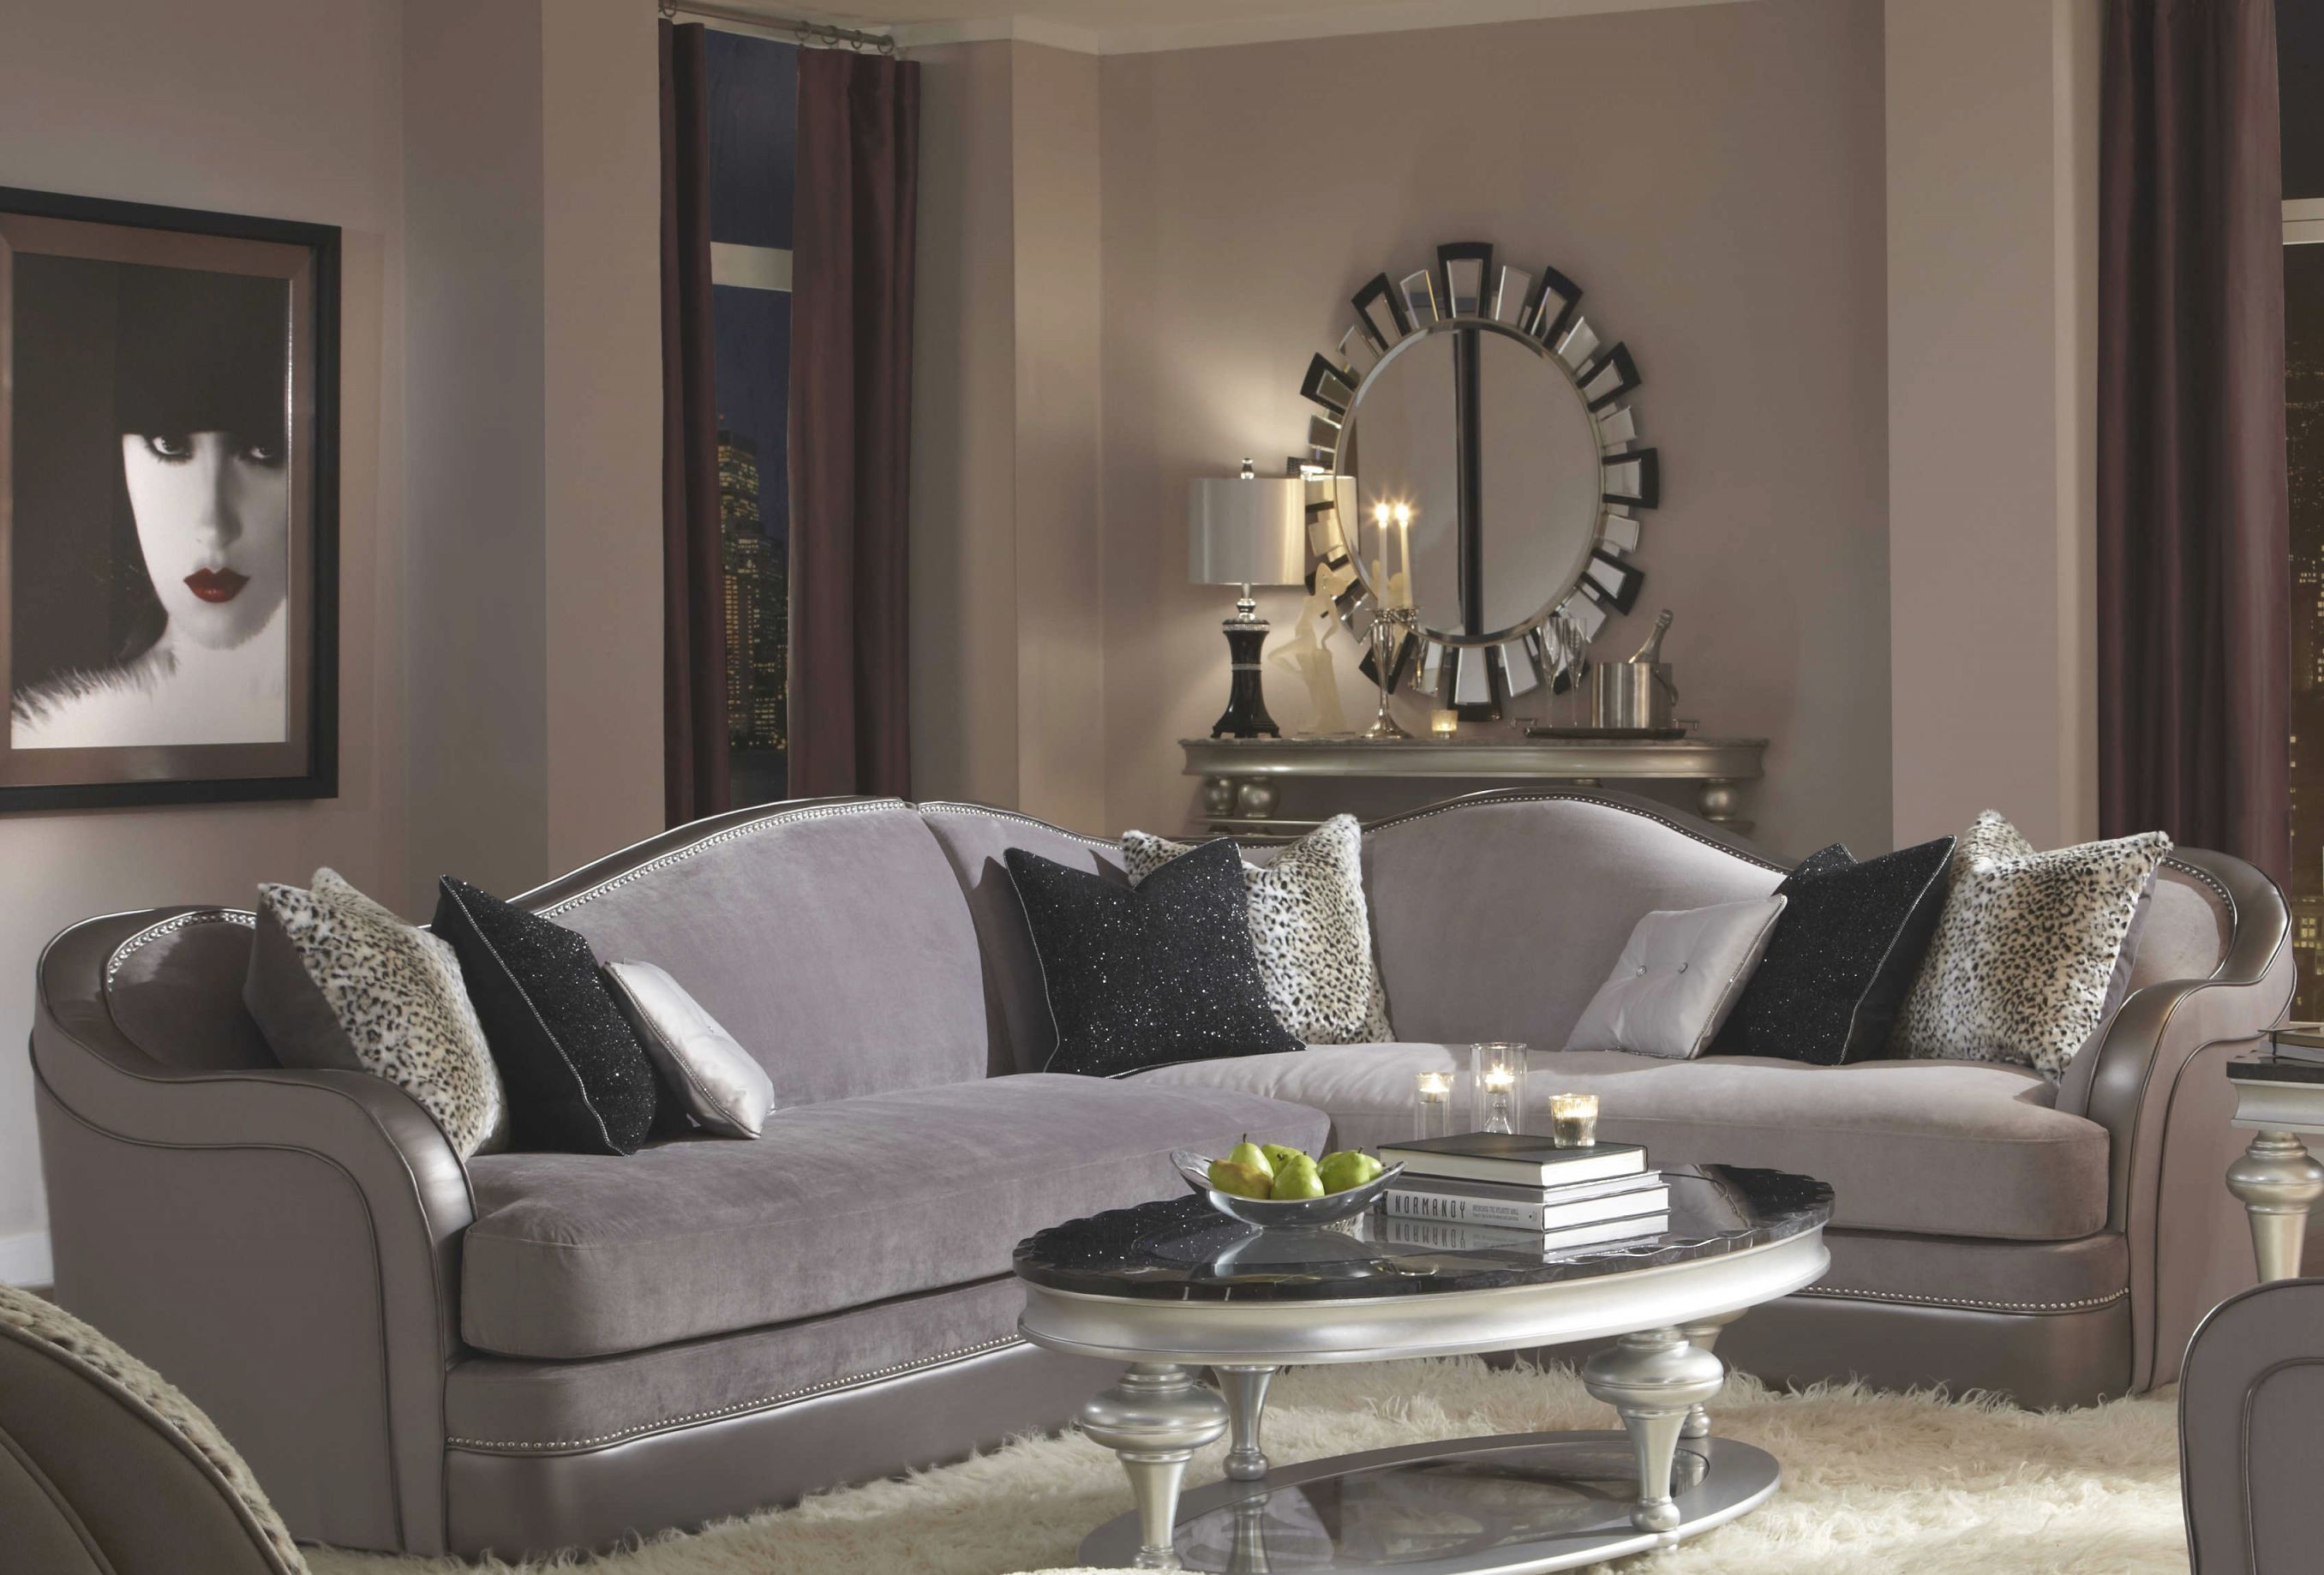 Aico Furniture Michael Amini Hollywood Swank Starry Night Silver Sectional Sofa with regard to Lovely Michael Amini Living Room Furniture